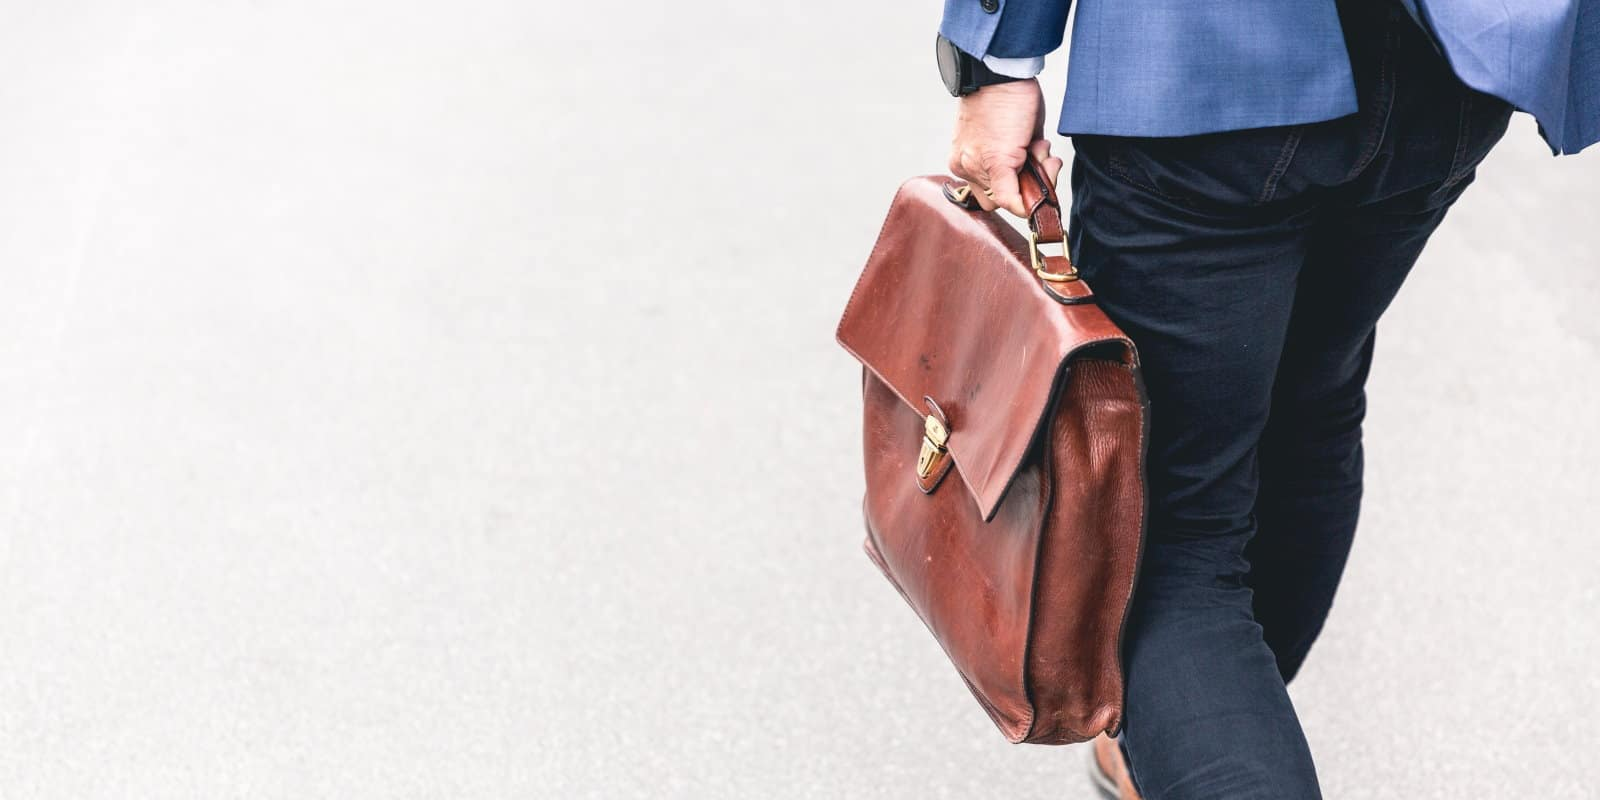 Man in jeans walks away from camera carrying a worn brown leather briefcase